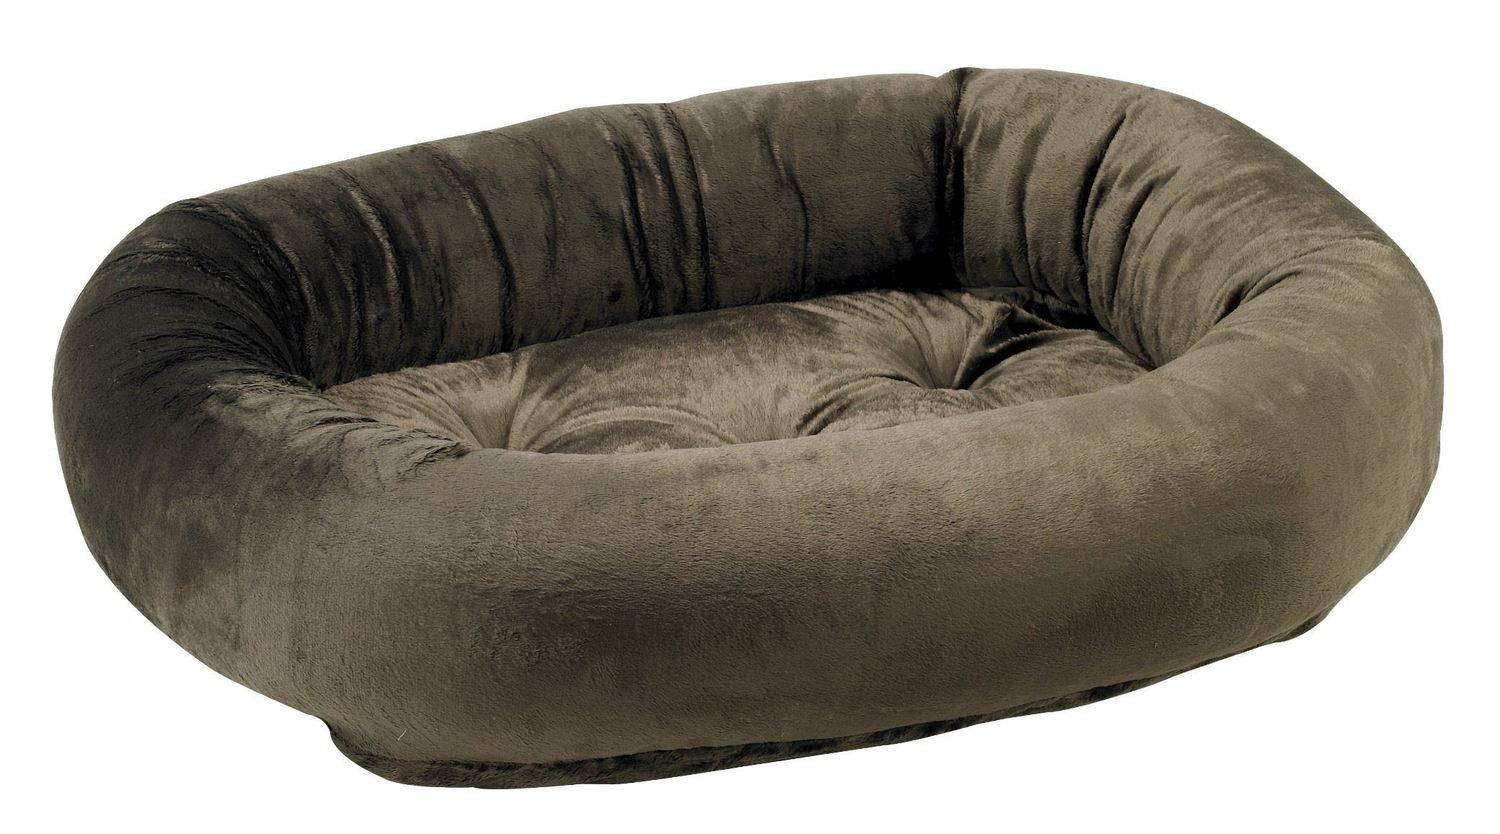 Donut Pet Bed Brown Teddy